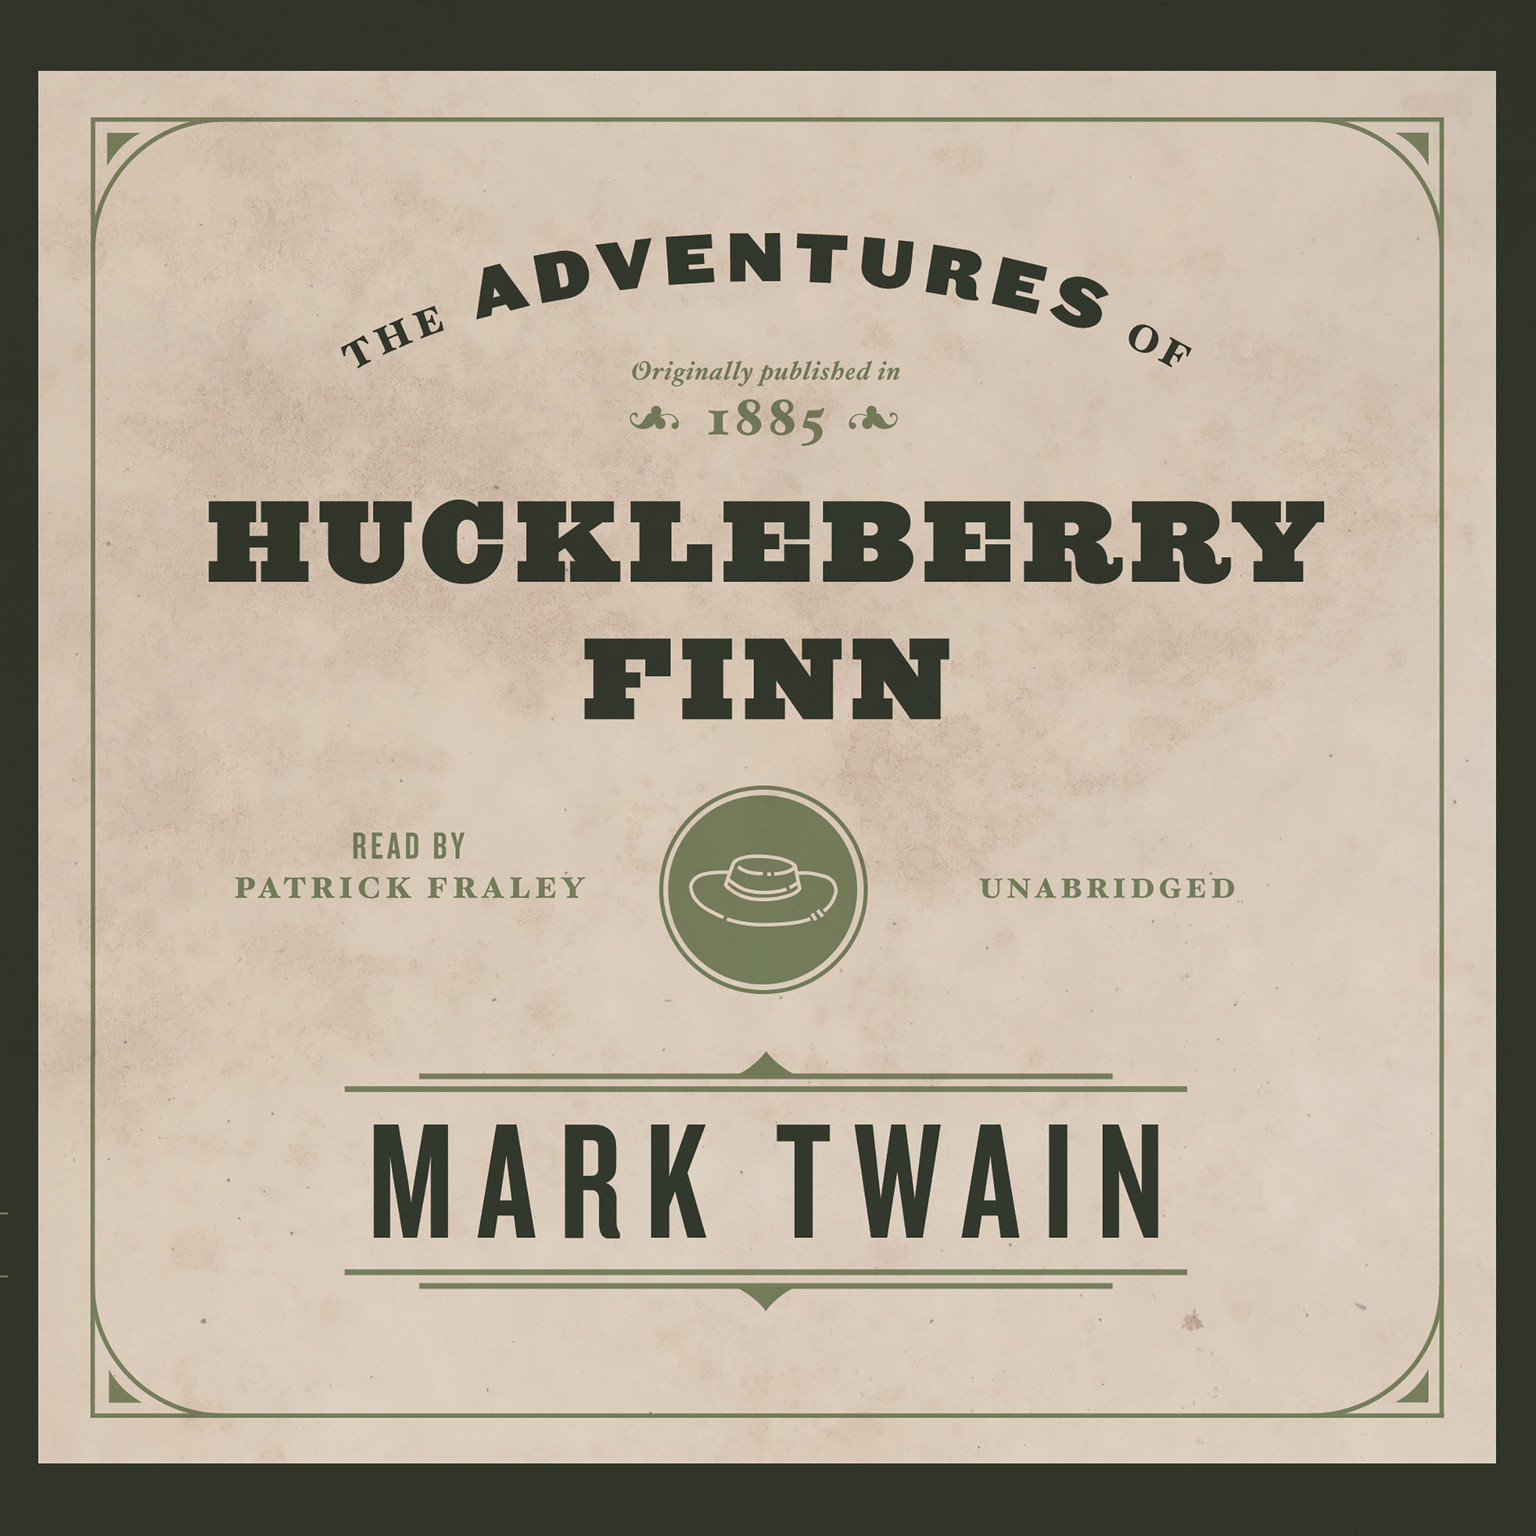 heart and conscience in mark twains adventures of huckleberry finn essay In the adventures of huckleberry finn,many fundamental themes,images and symbols are adventures of huckleberry finn - essay mark twains the adventures of.